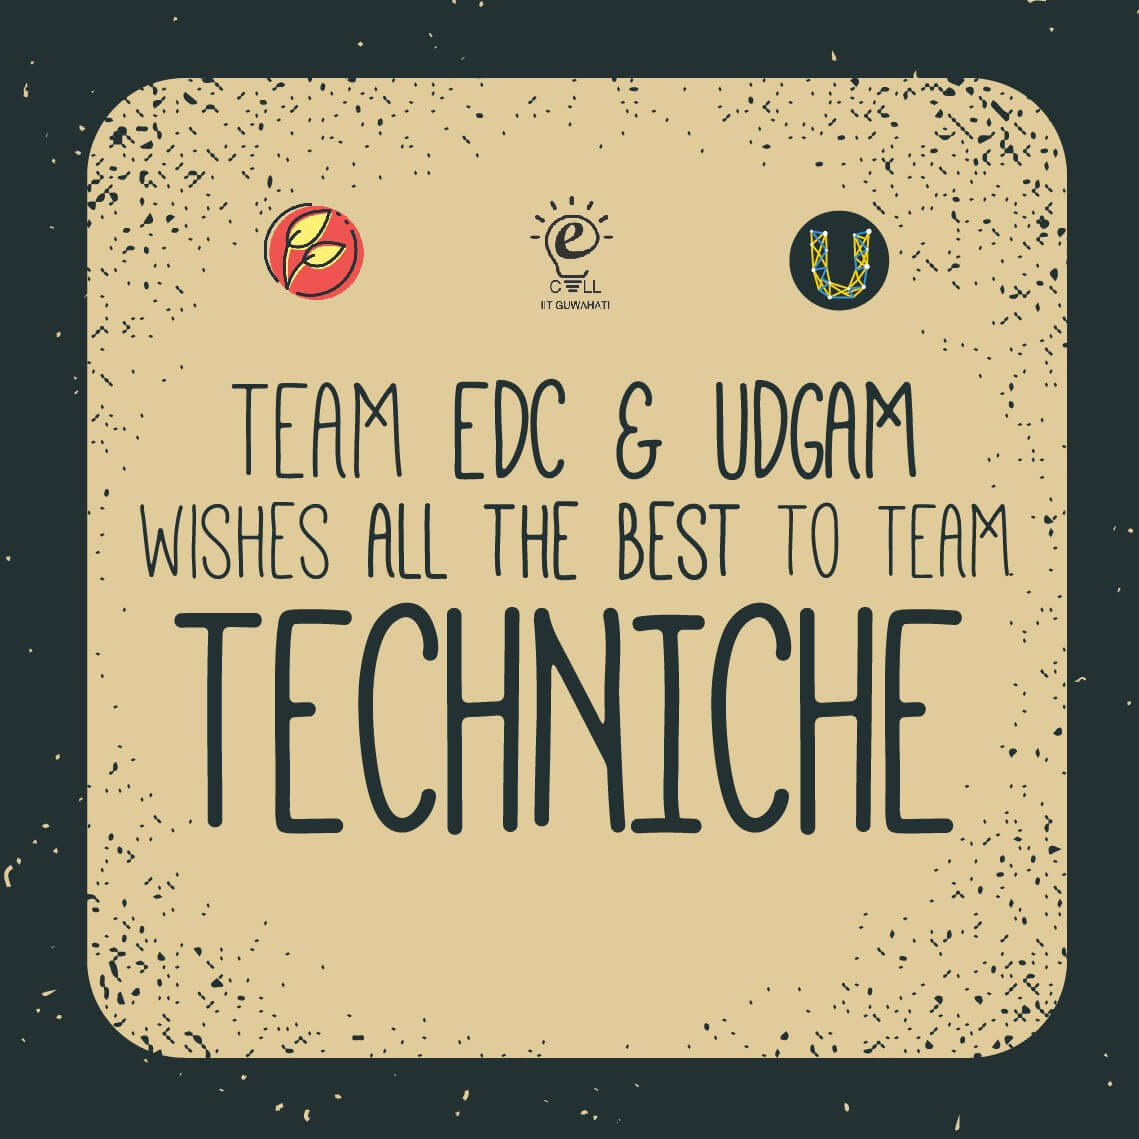 All the Best! Techniche